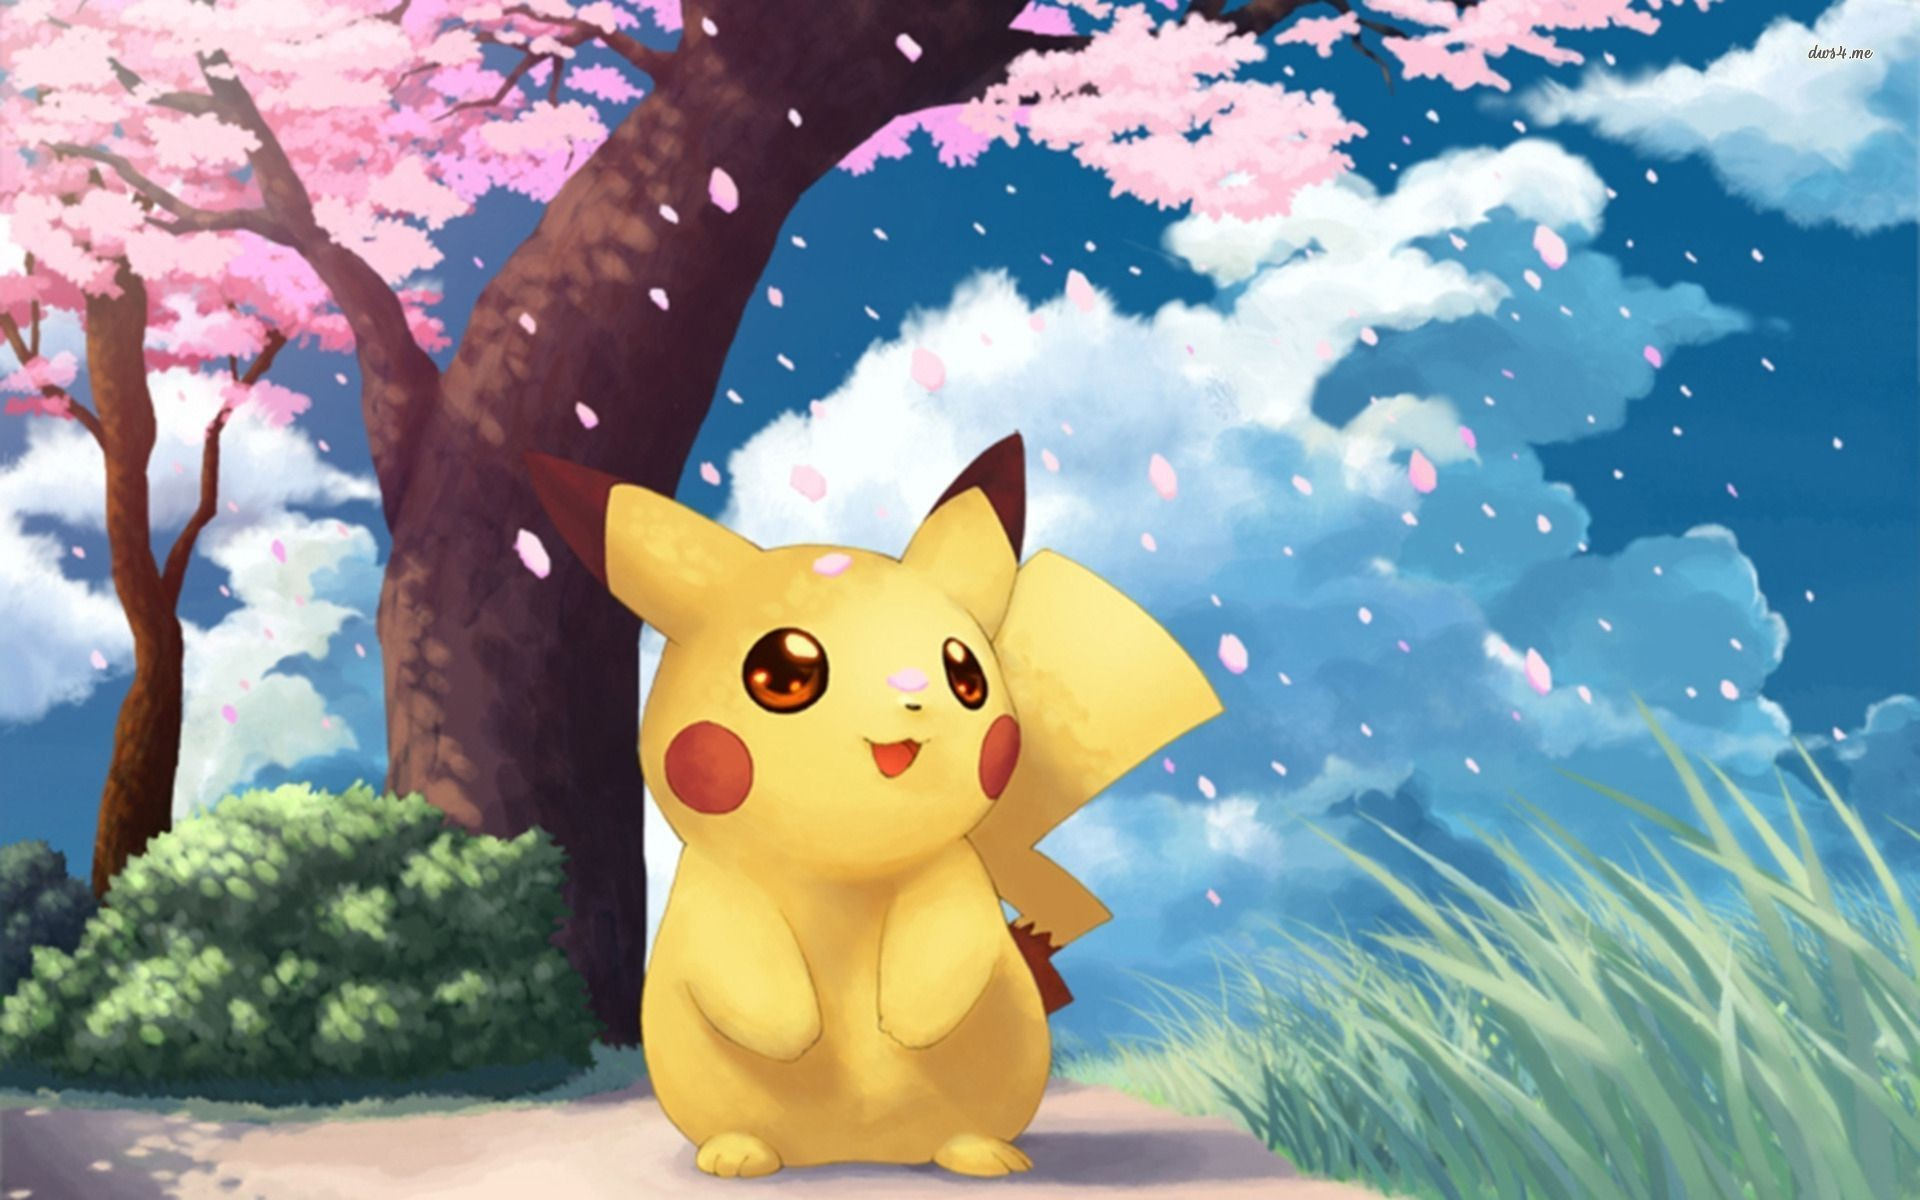 Pictures Of Pokemon Pikachu